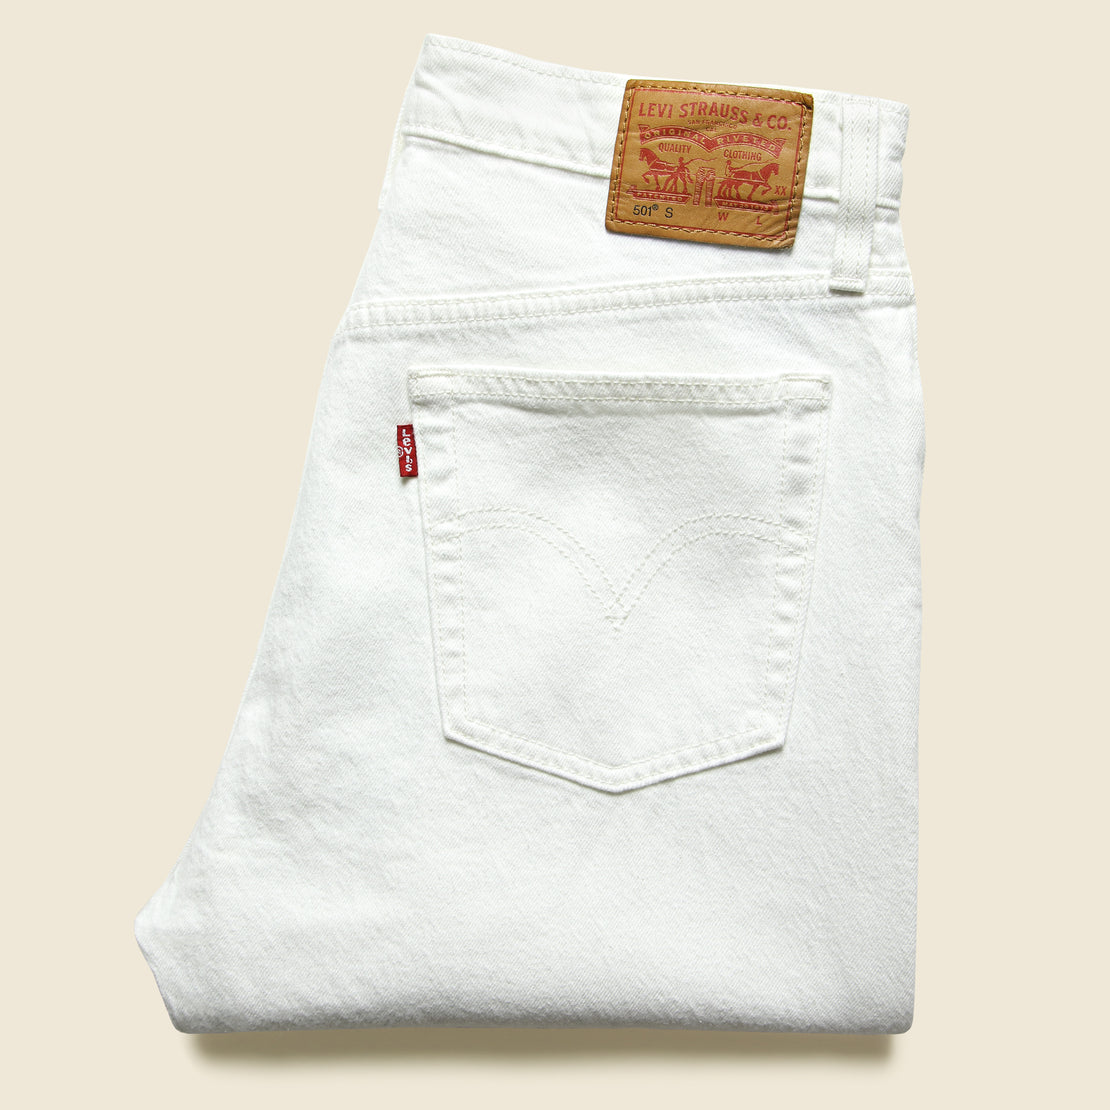 Levis Premium 501 Skinny - In the Clouds